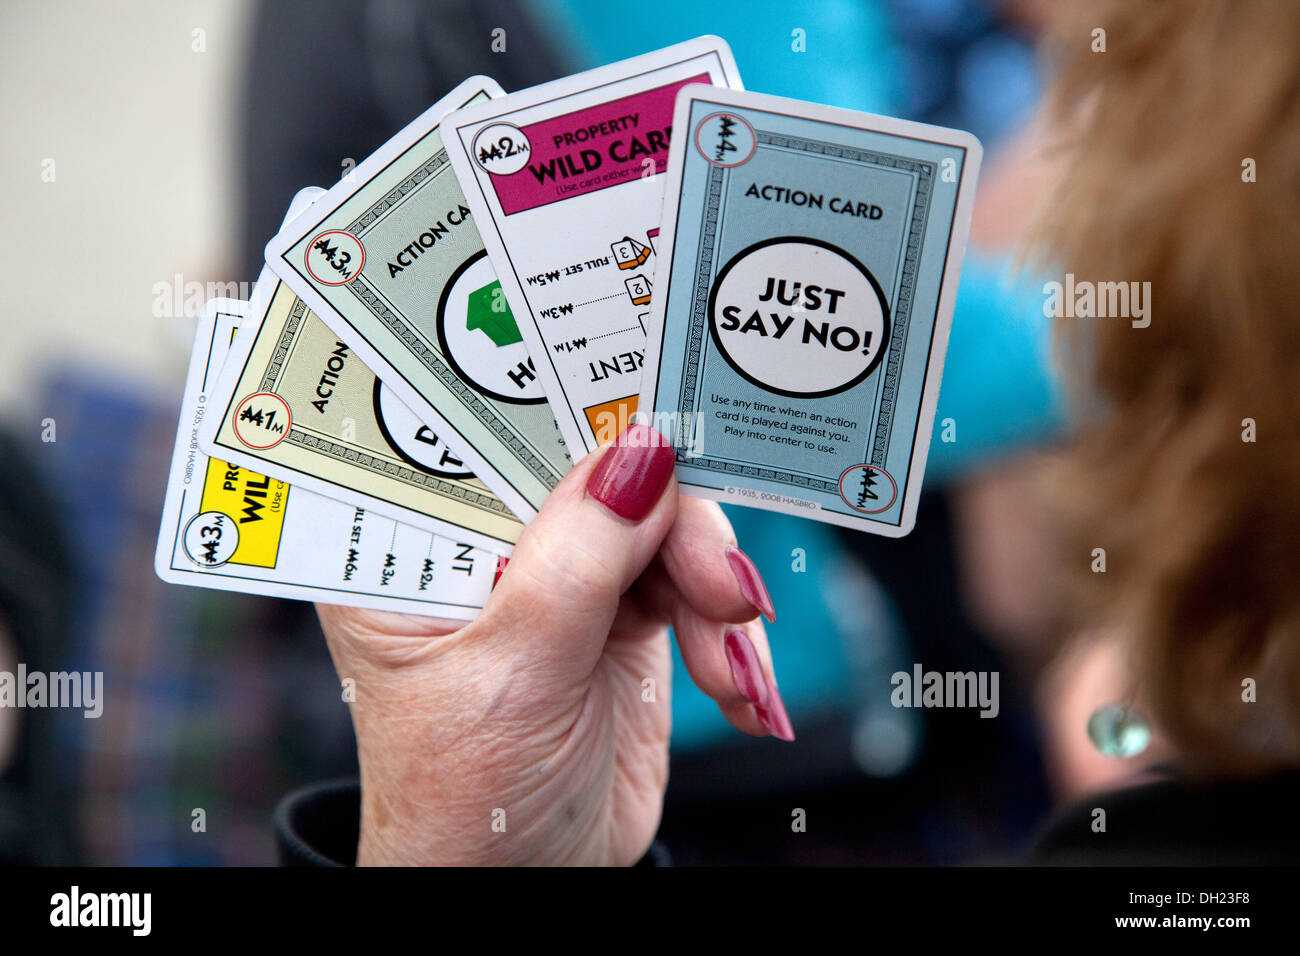 Player holding the 'just say no' action card during a Monopoly Deal board game. St Paul Minnesota MN USA - Stock Image